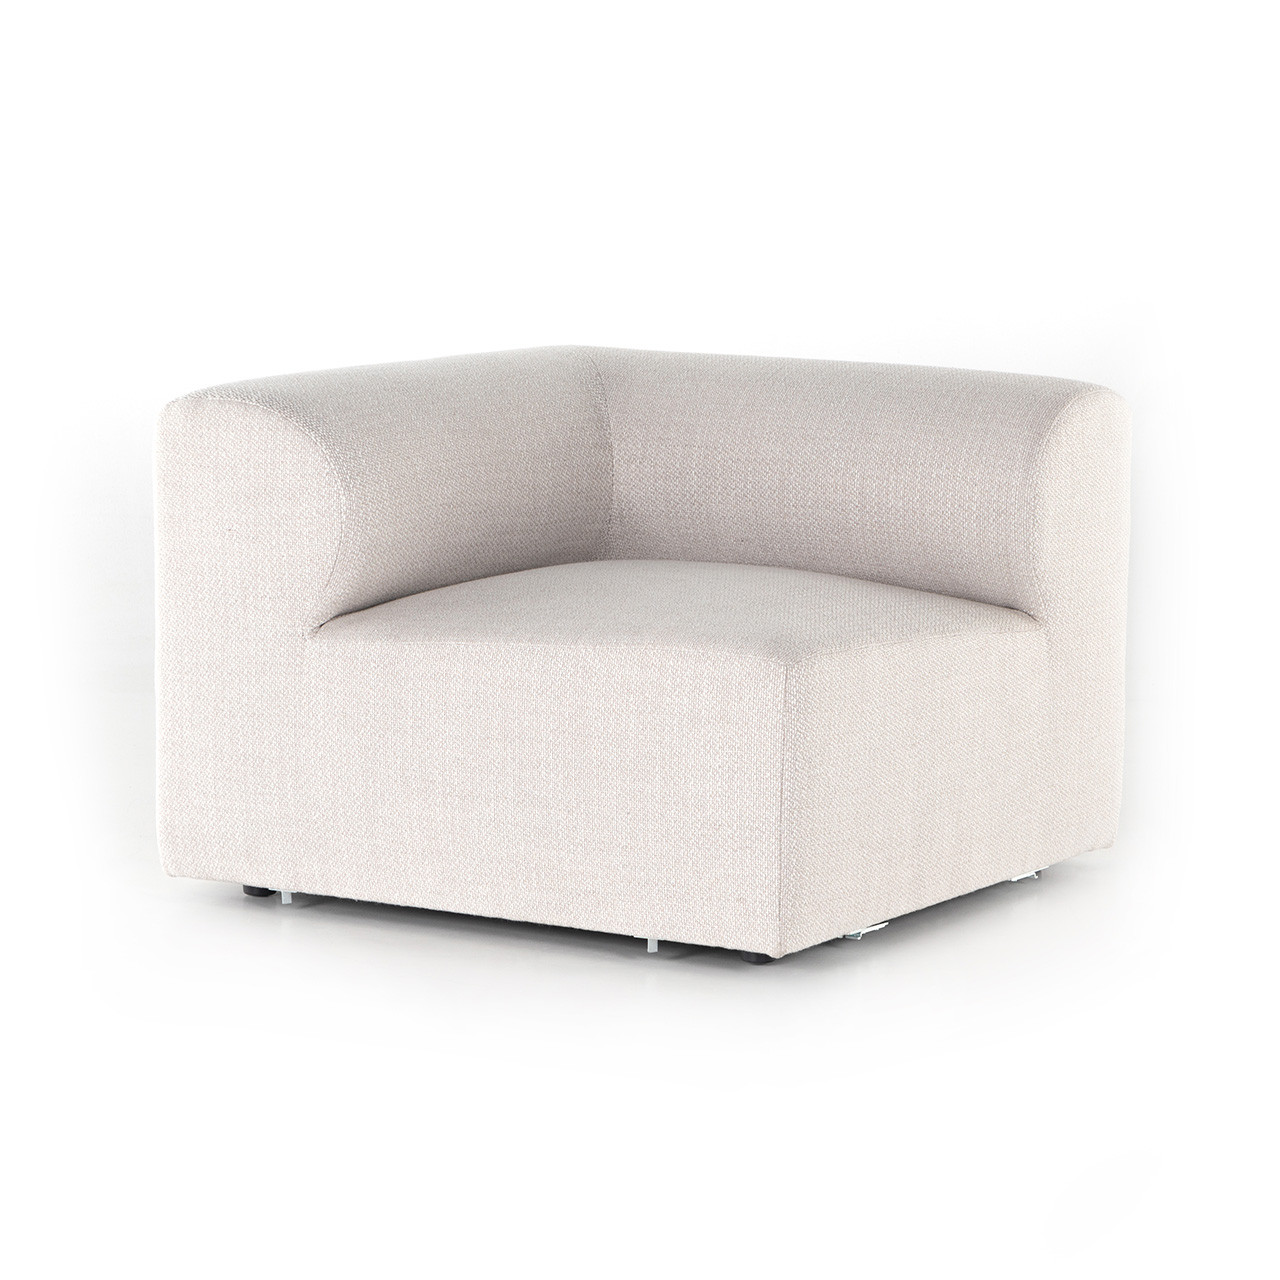 Koda - Build Your Own Sectional